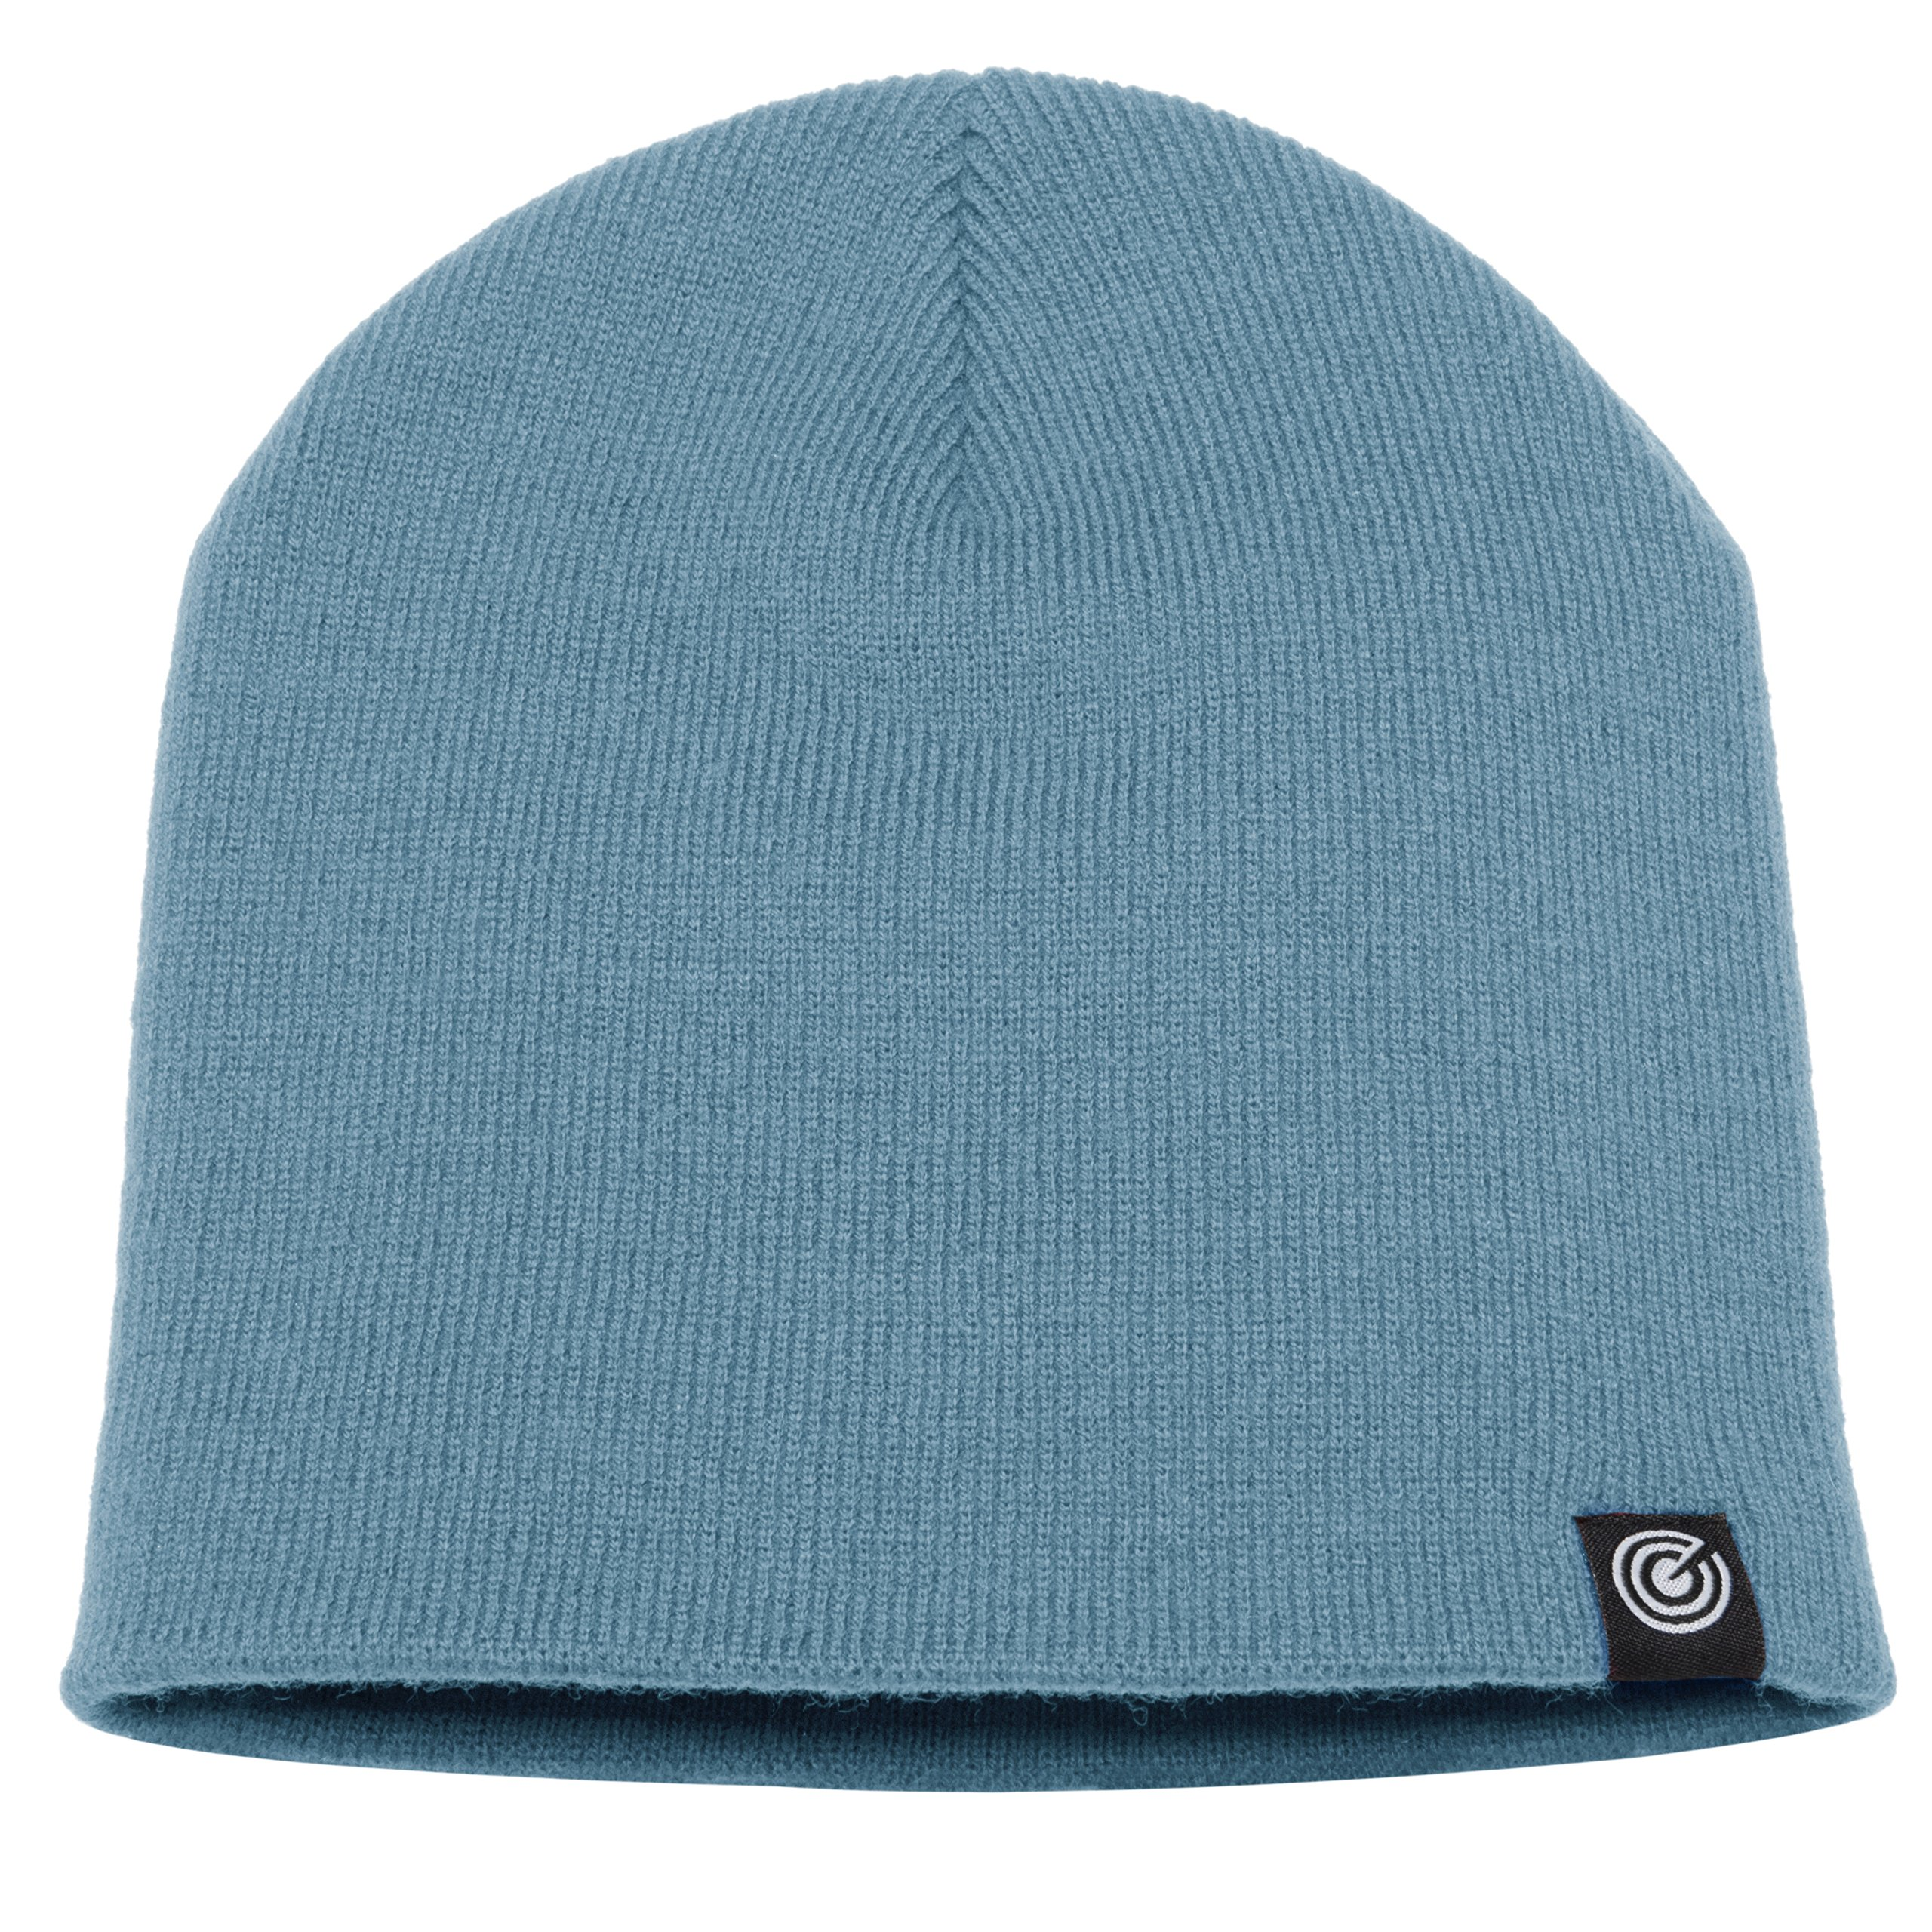 Evony Original Beanie Cap - Soft Knit Beanie Hat - Warm and Durable (Blue Denim)